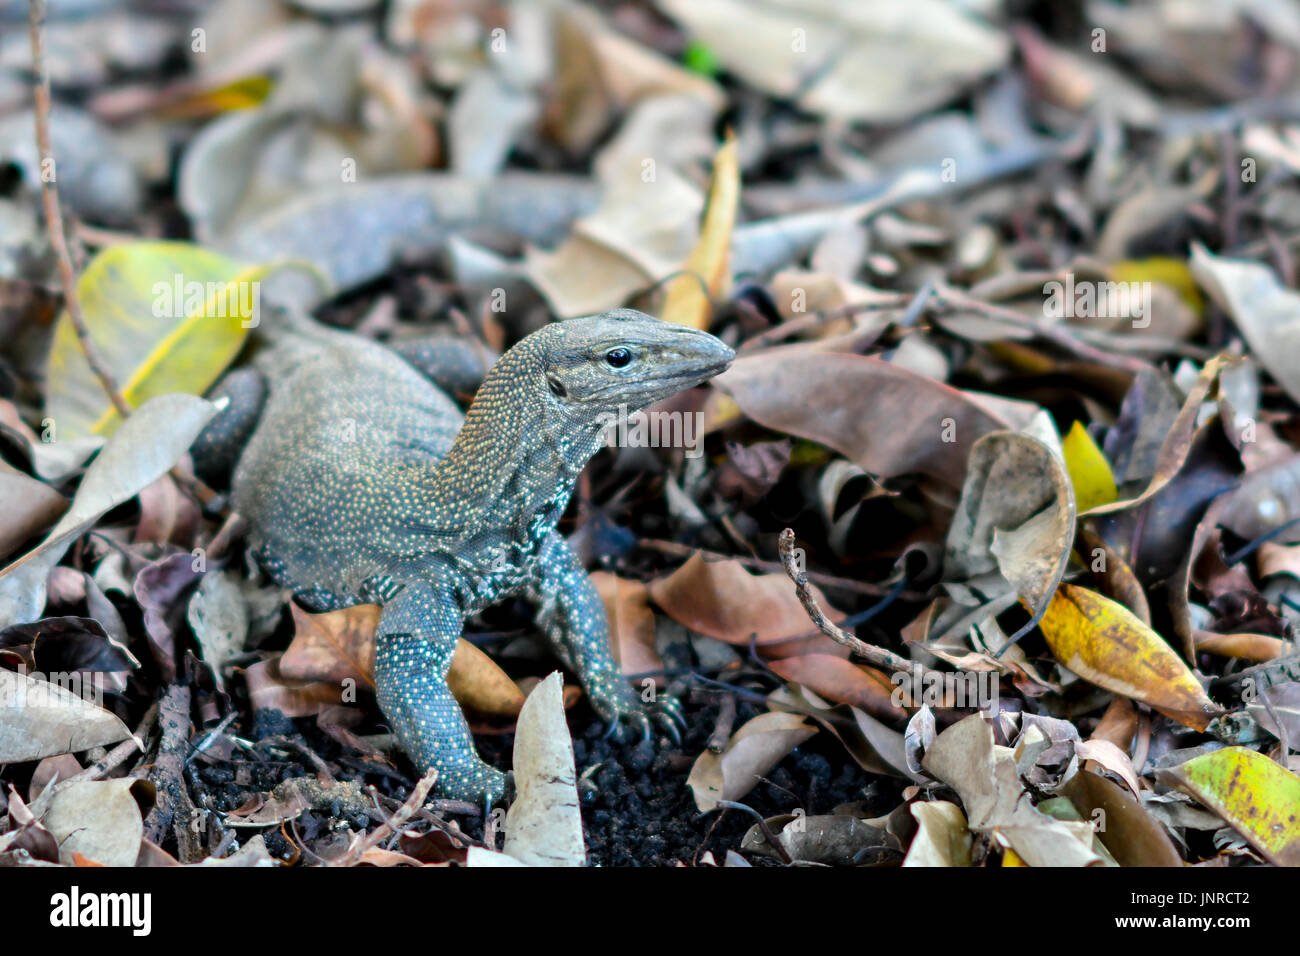 big lizard - Stock Image